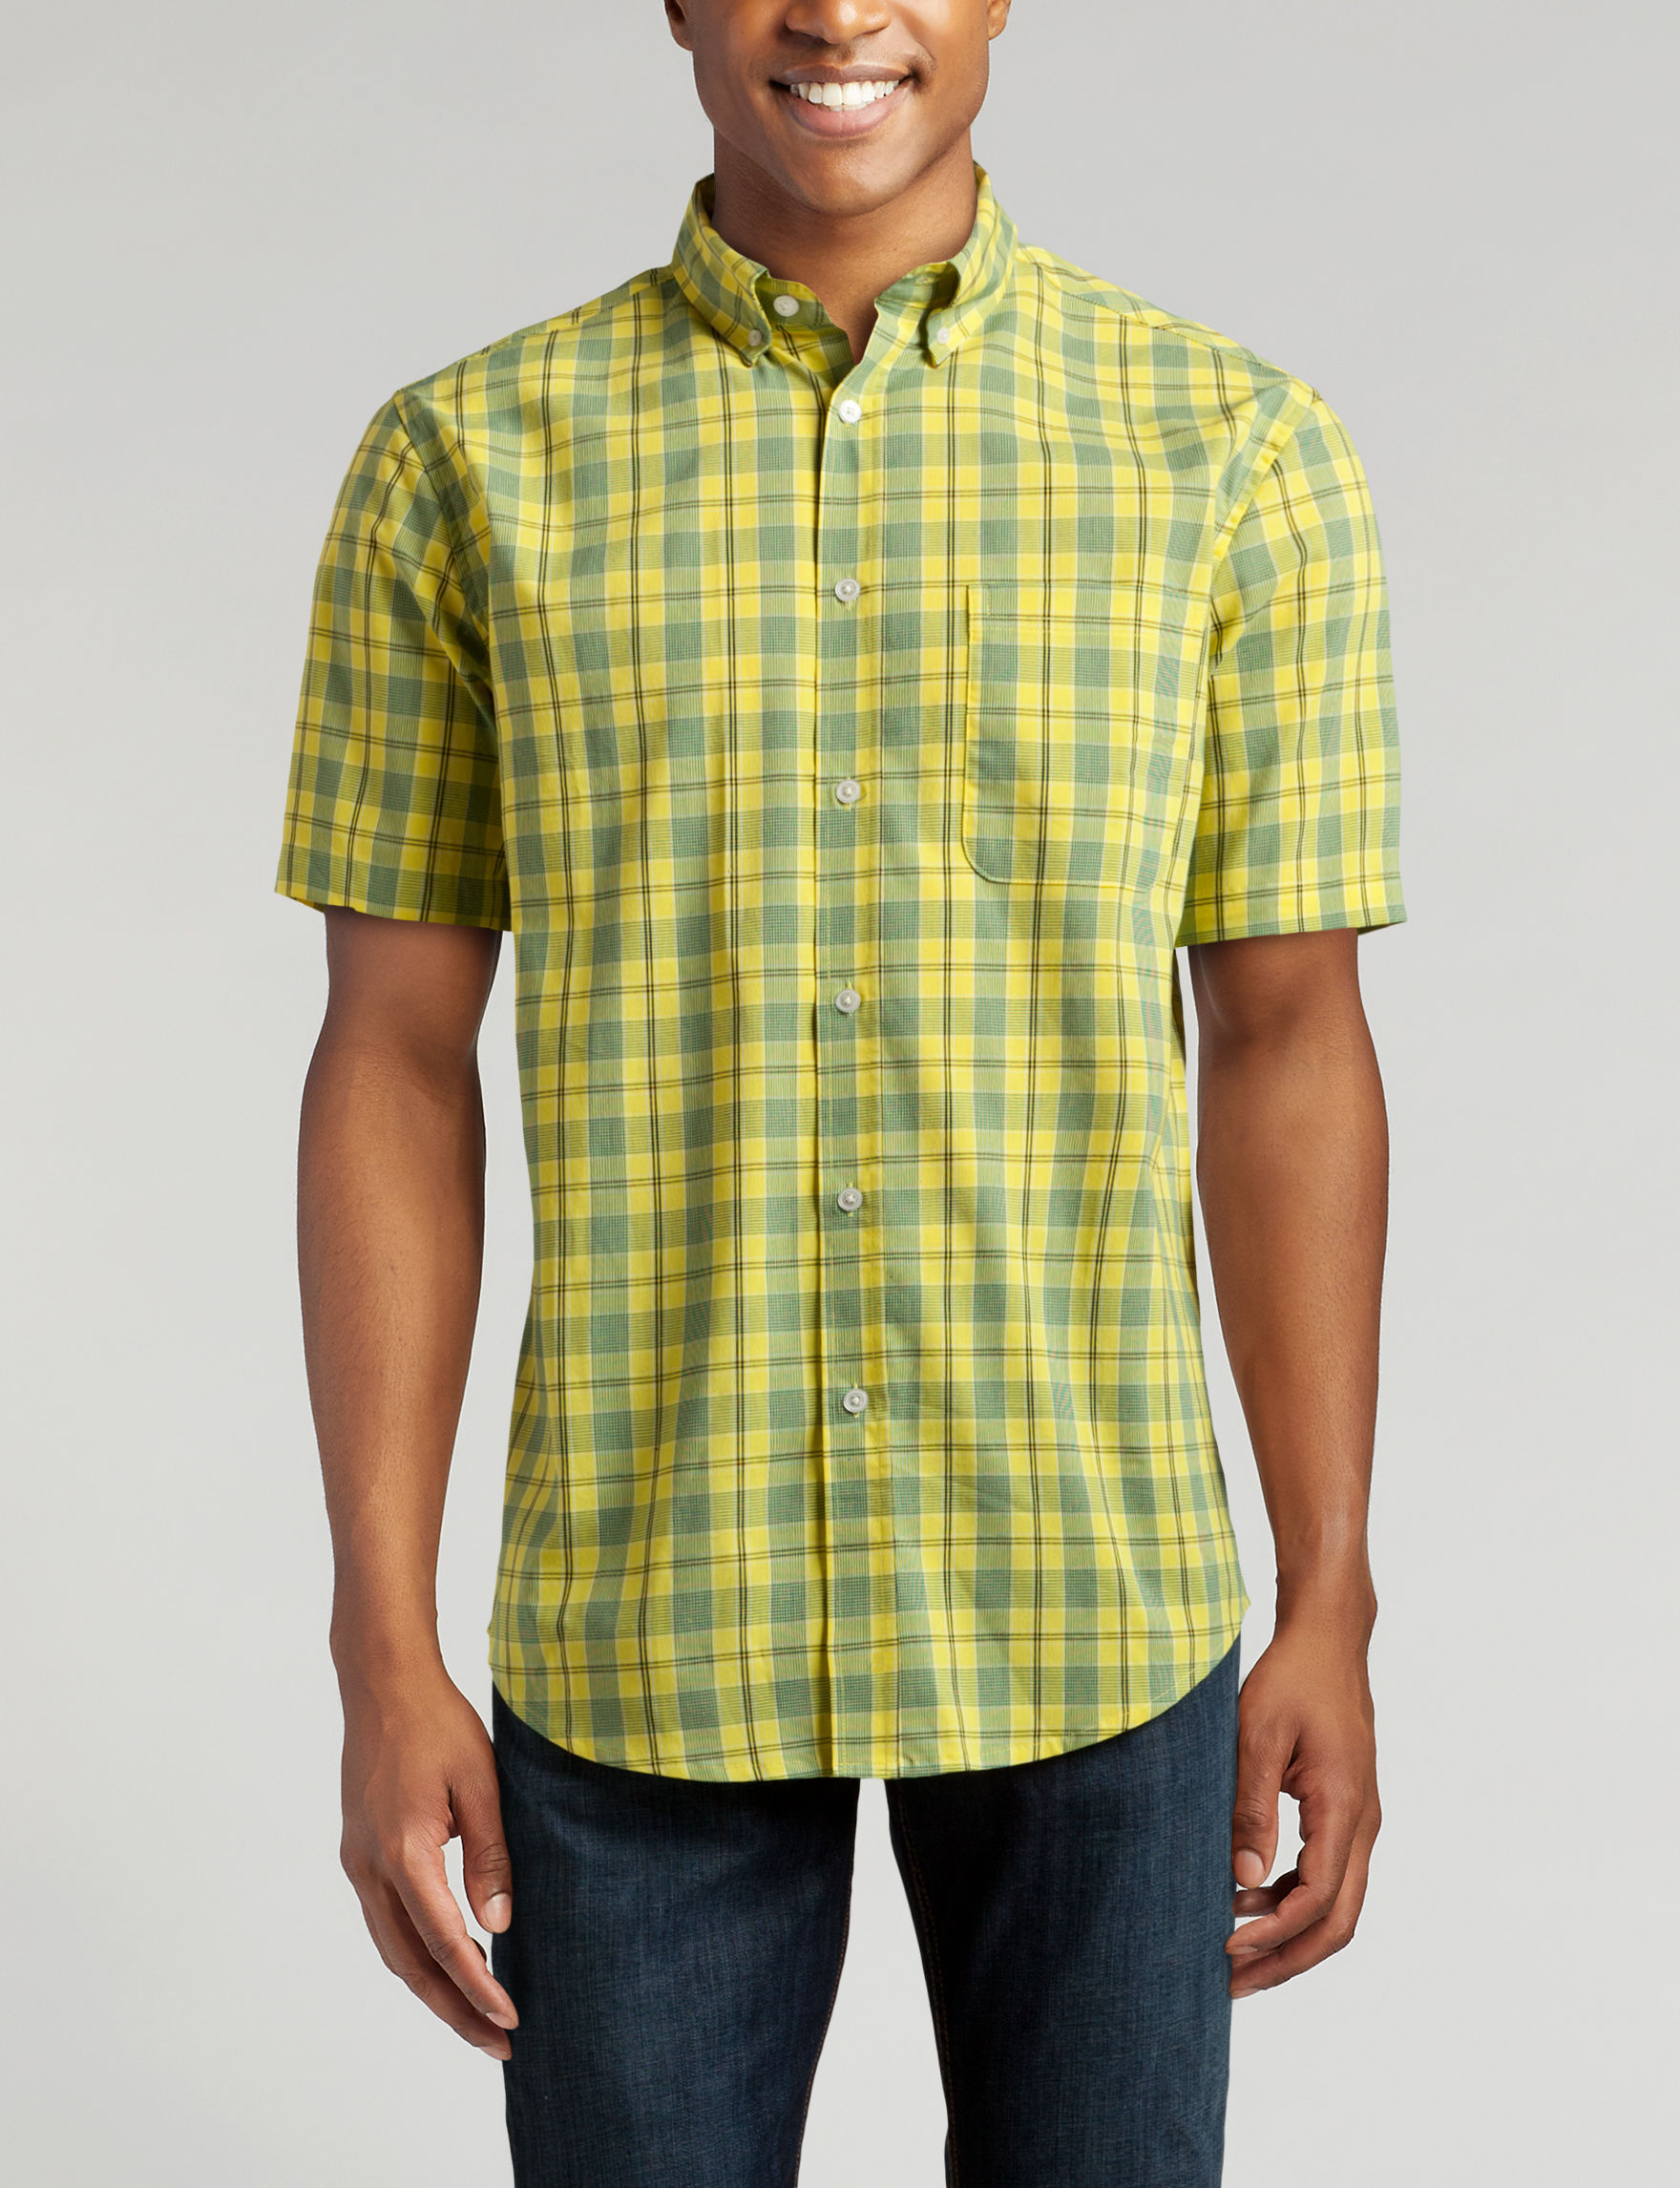 Sun River Yellow Casual Button Down Shirts